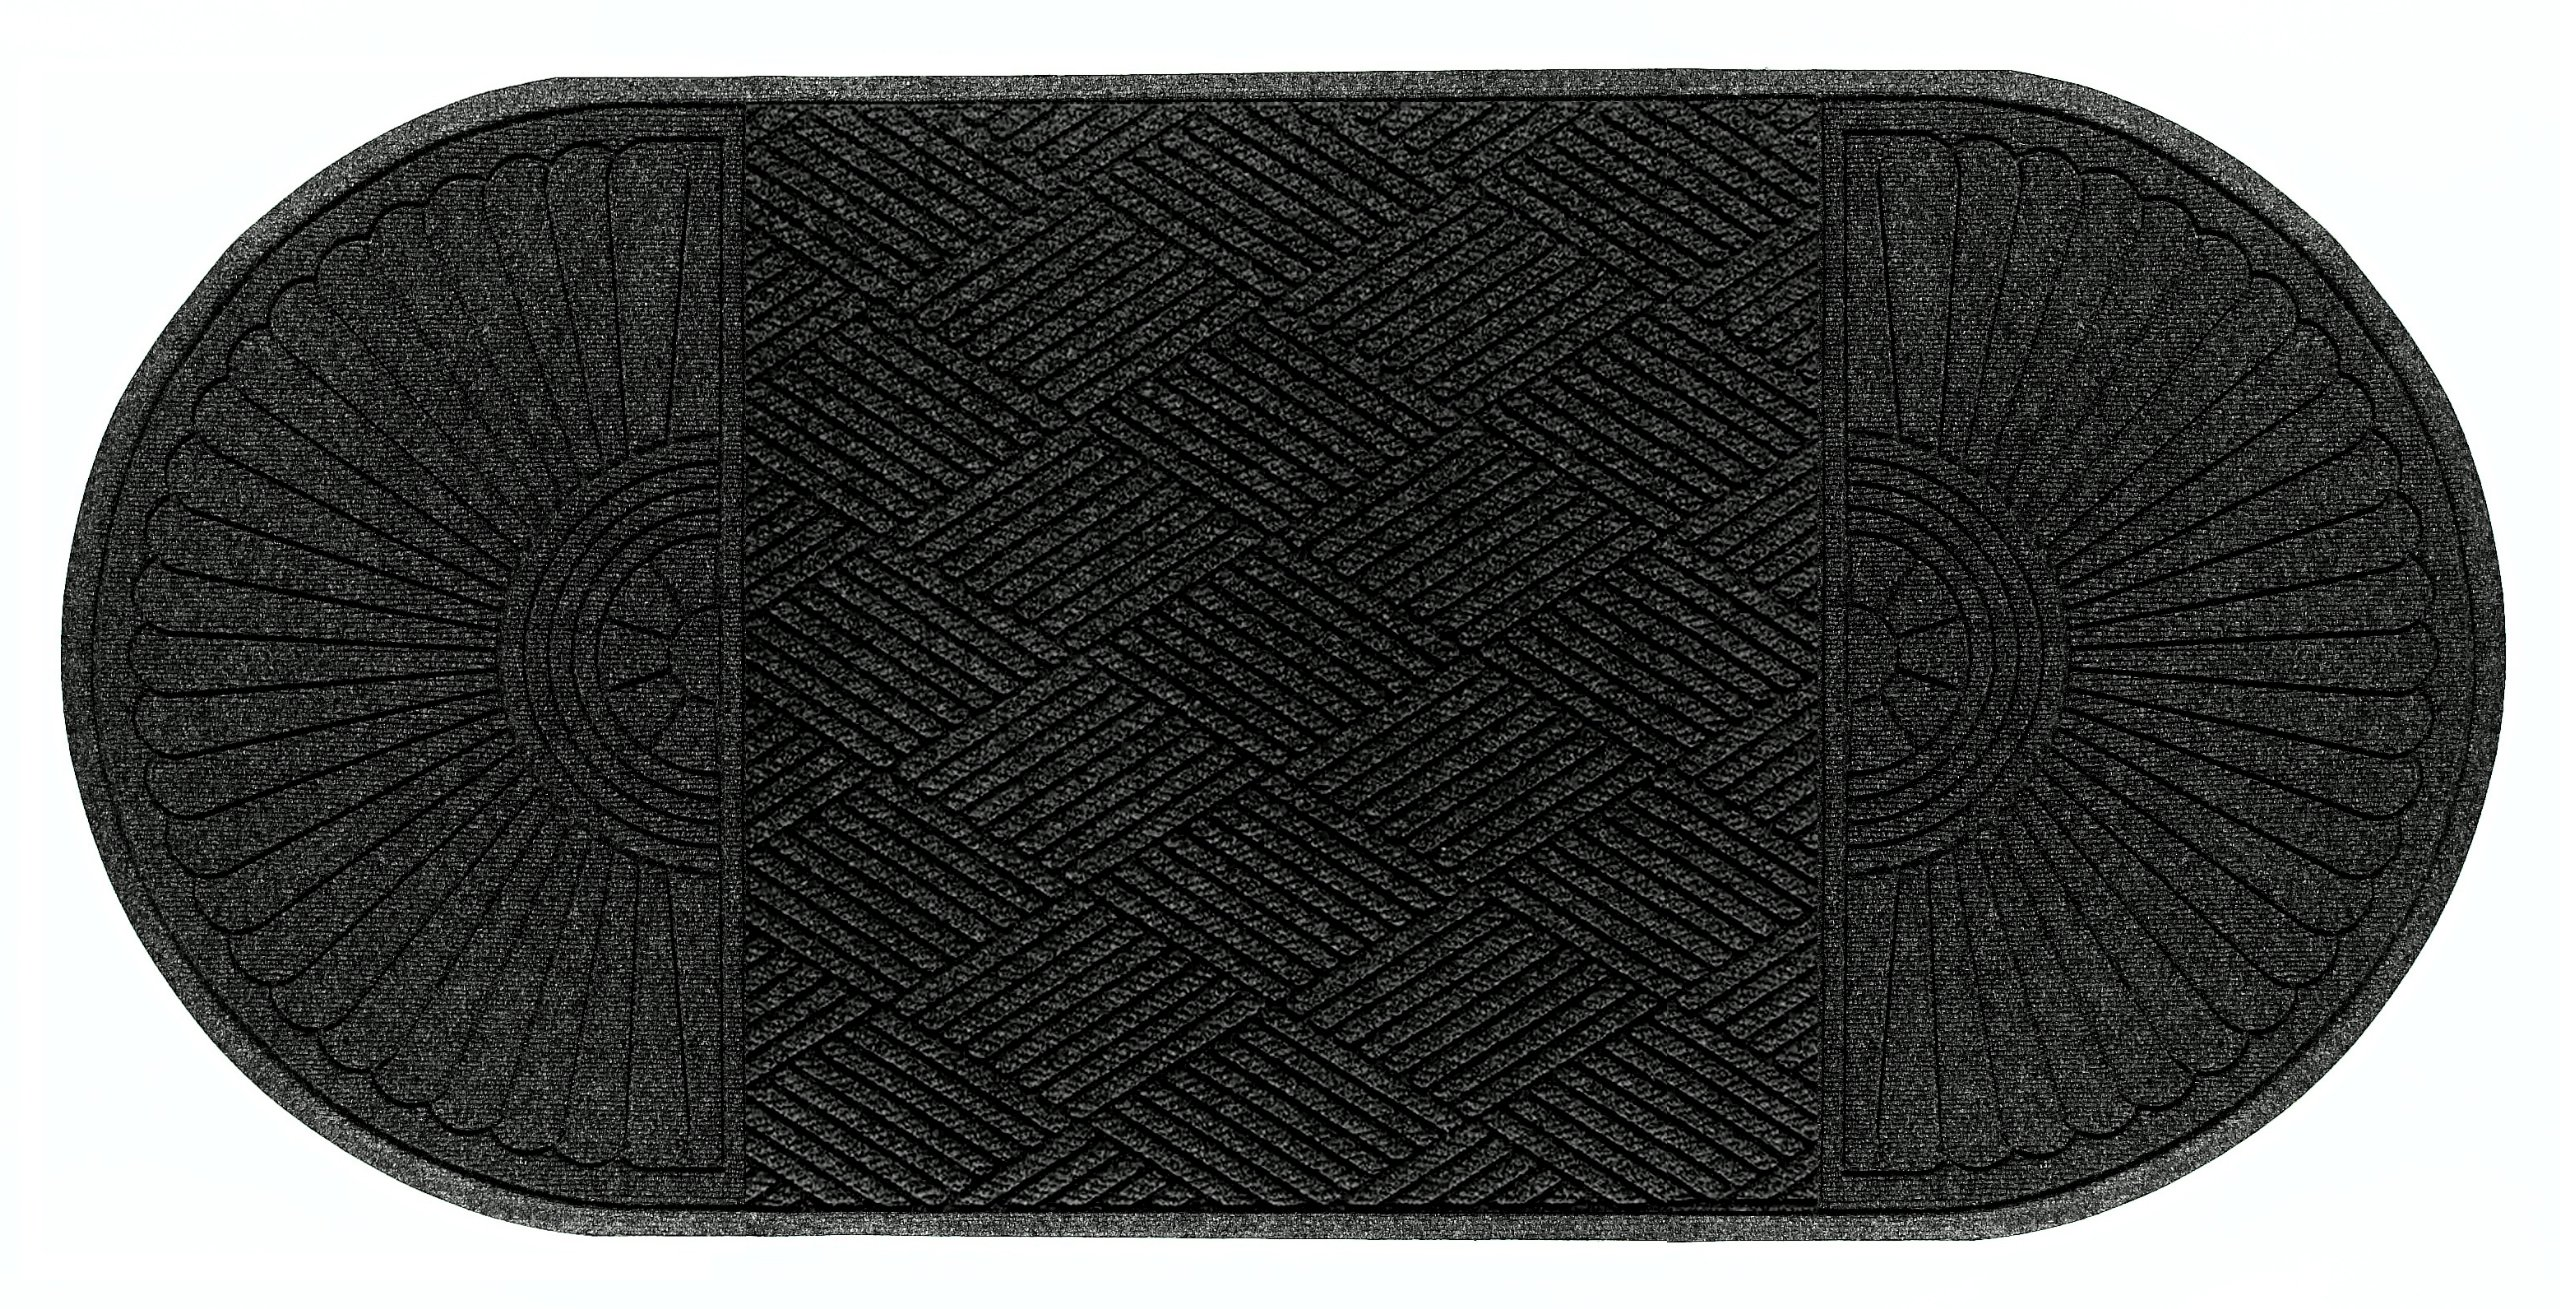 Andersen 274 Waterhog Grand Classic Polypropylene Fiber Double Ends Entrance Indoor/Outdoor Floor Mat, SBR Rubber Backing, 10.1' Length x 6' Width, 3/8'' Thick, Charcoal